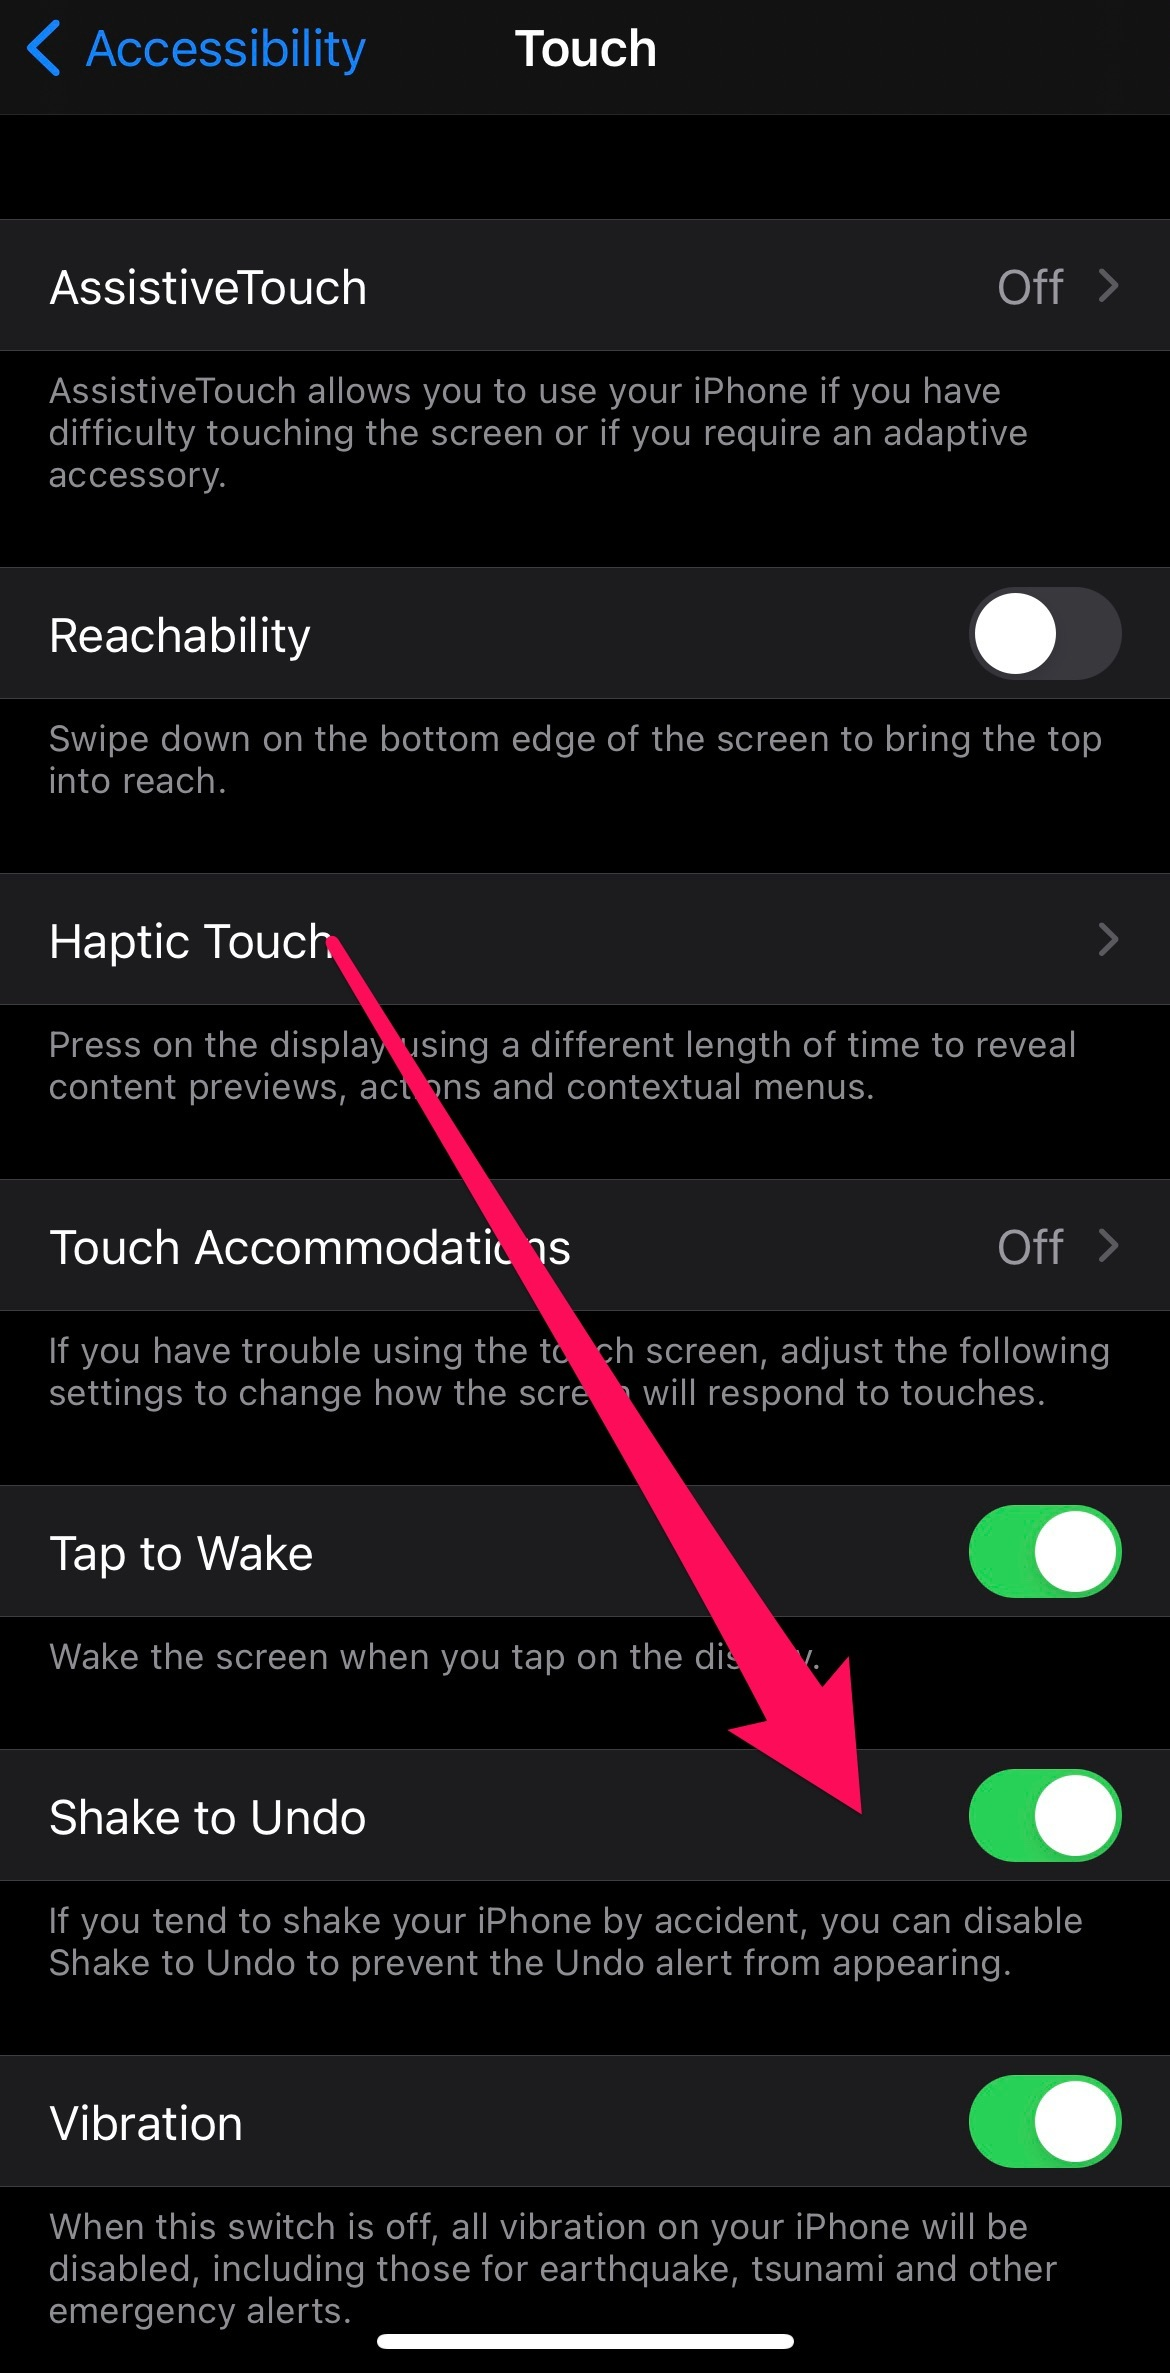 Tap the bubble to turn off Shake to Undo